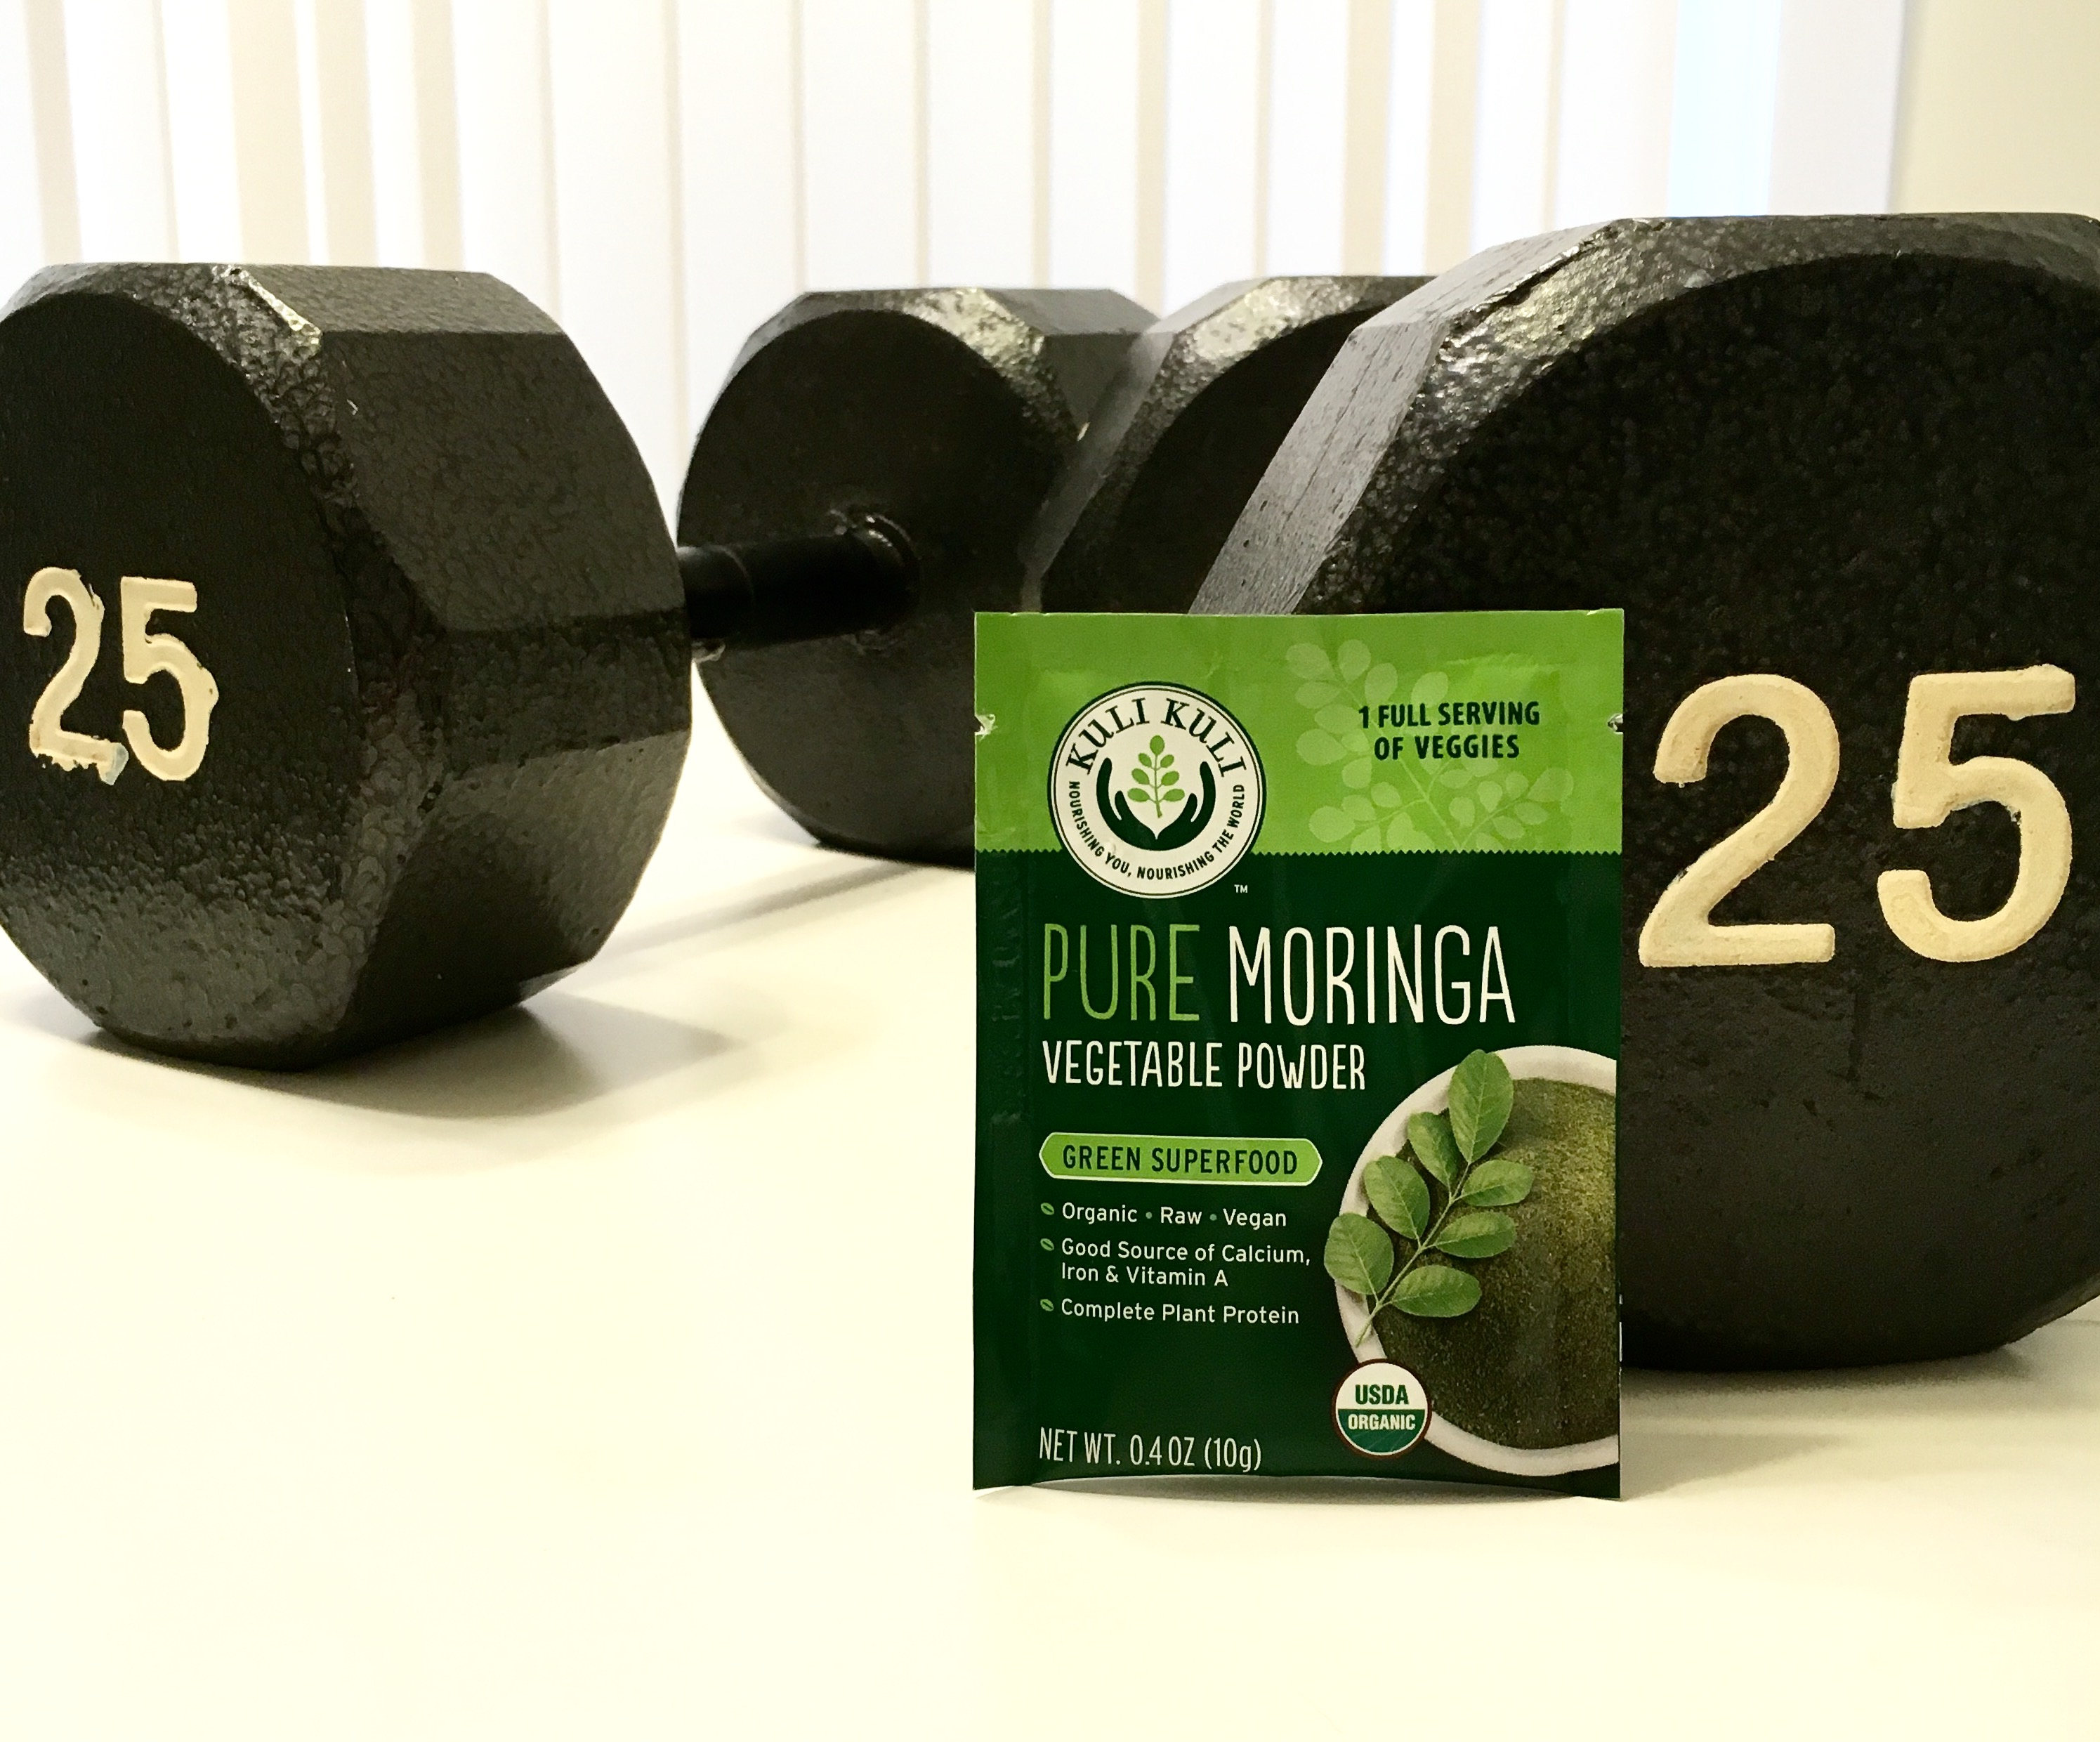 Moringa as A Remedy for Anemia and Low Iron Levels